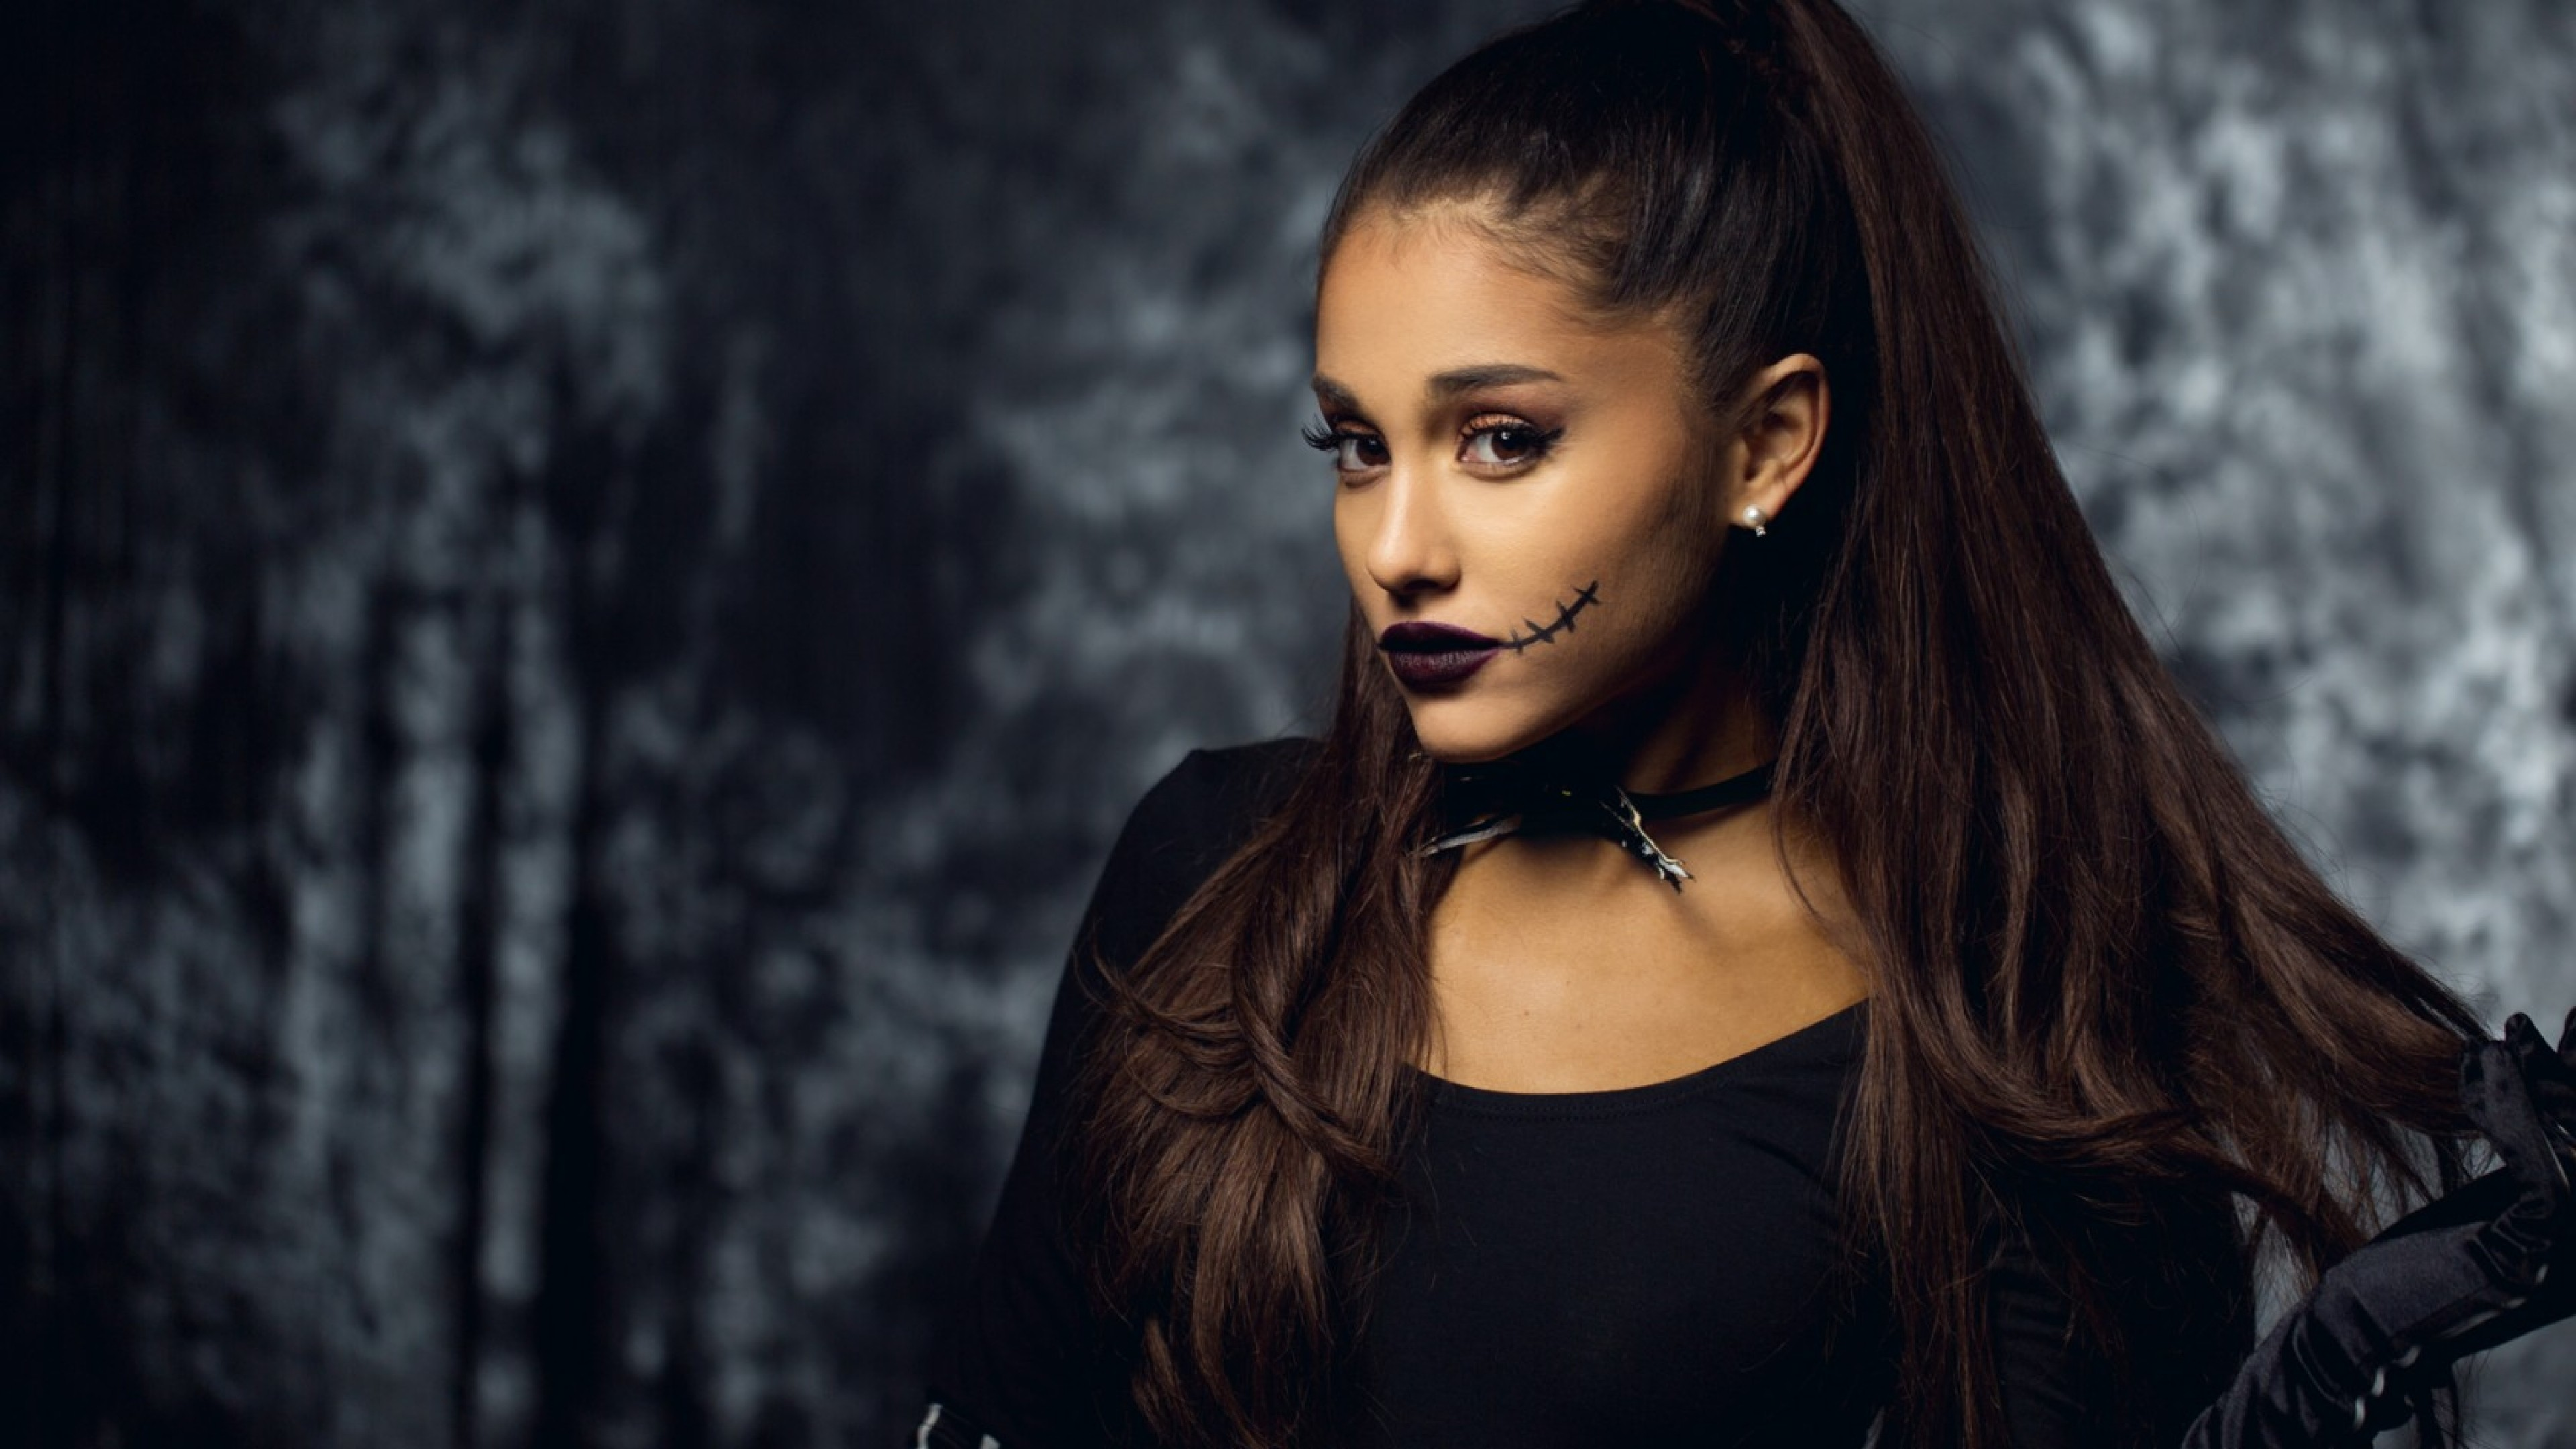 ariana grande makeup wallpaper background 63379